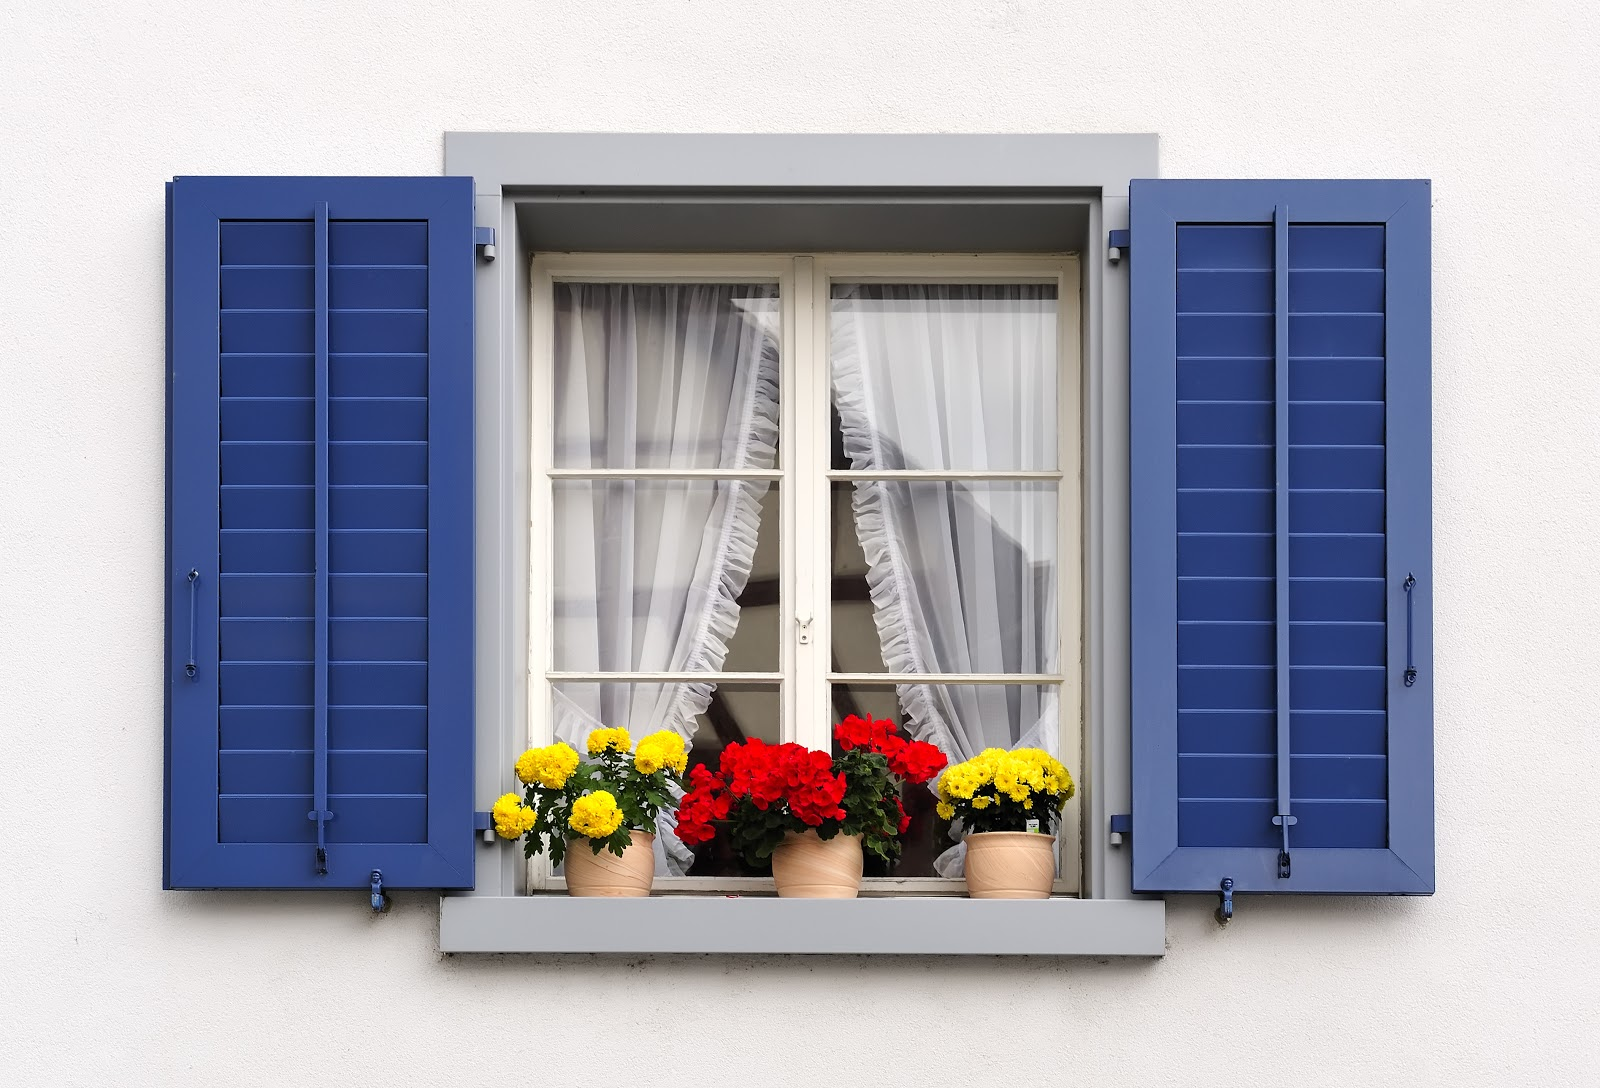 how to add curb appeal: paint shutters